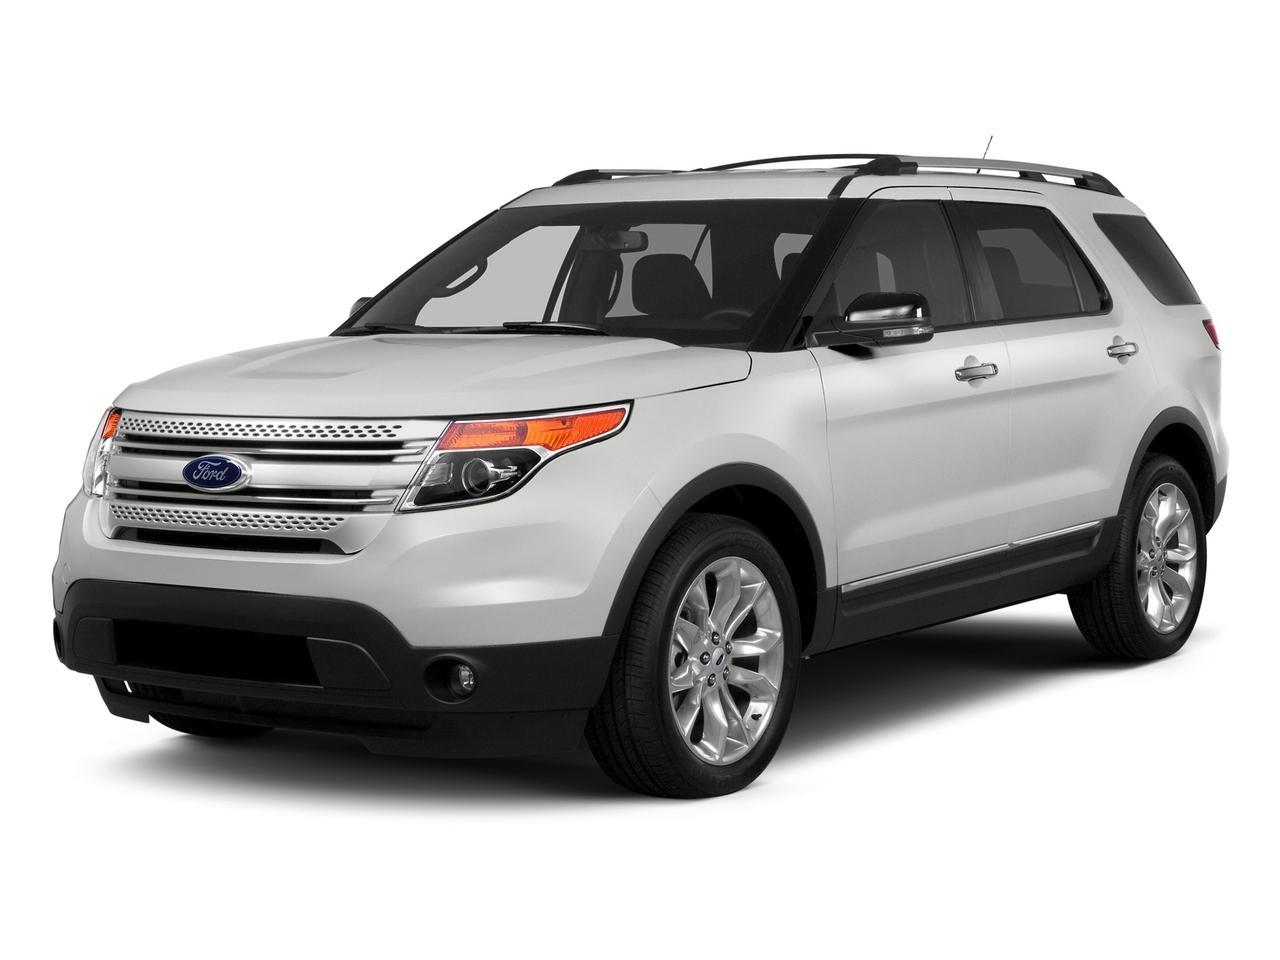 2015 Ford Explorer Vehicle Photo in Torrington, CT 06790